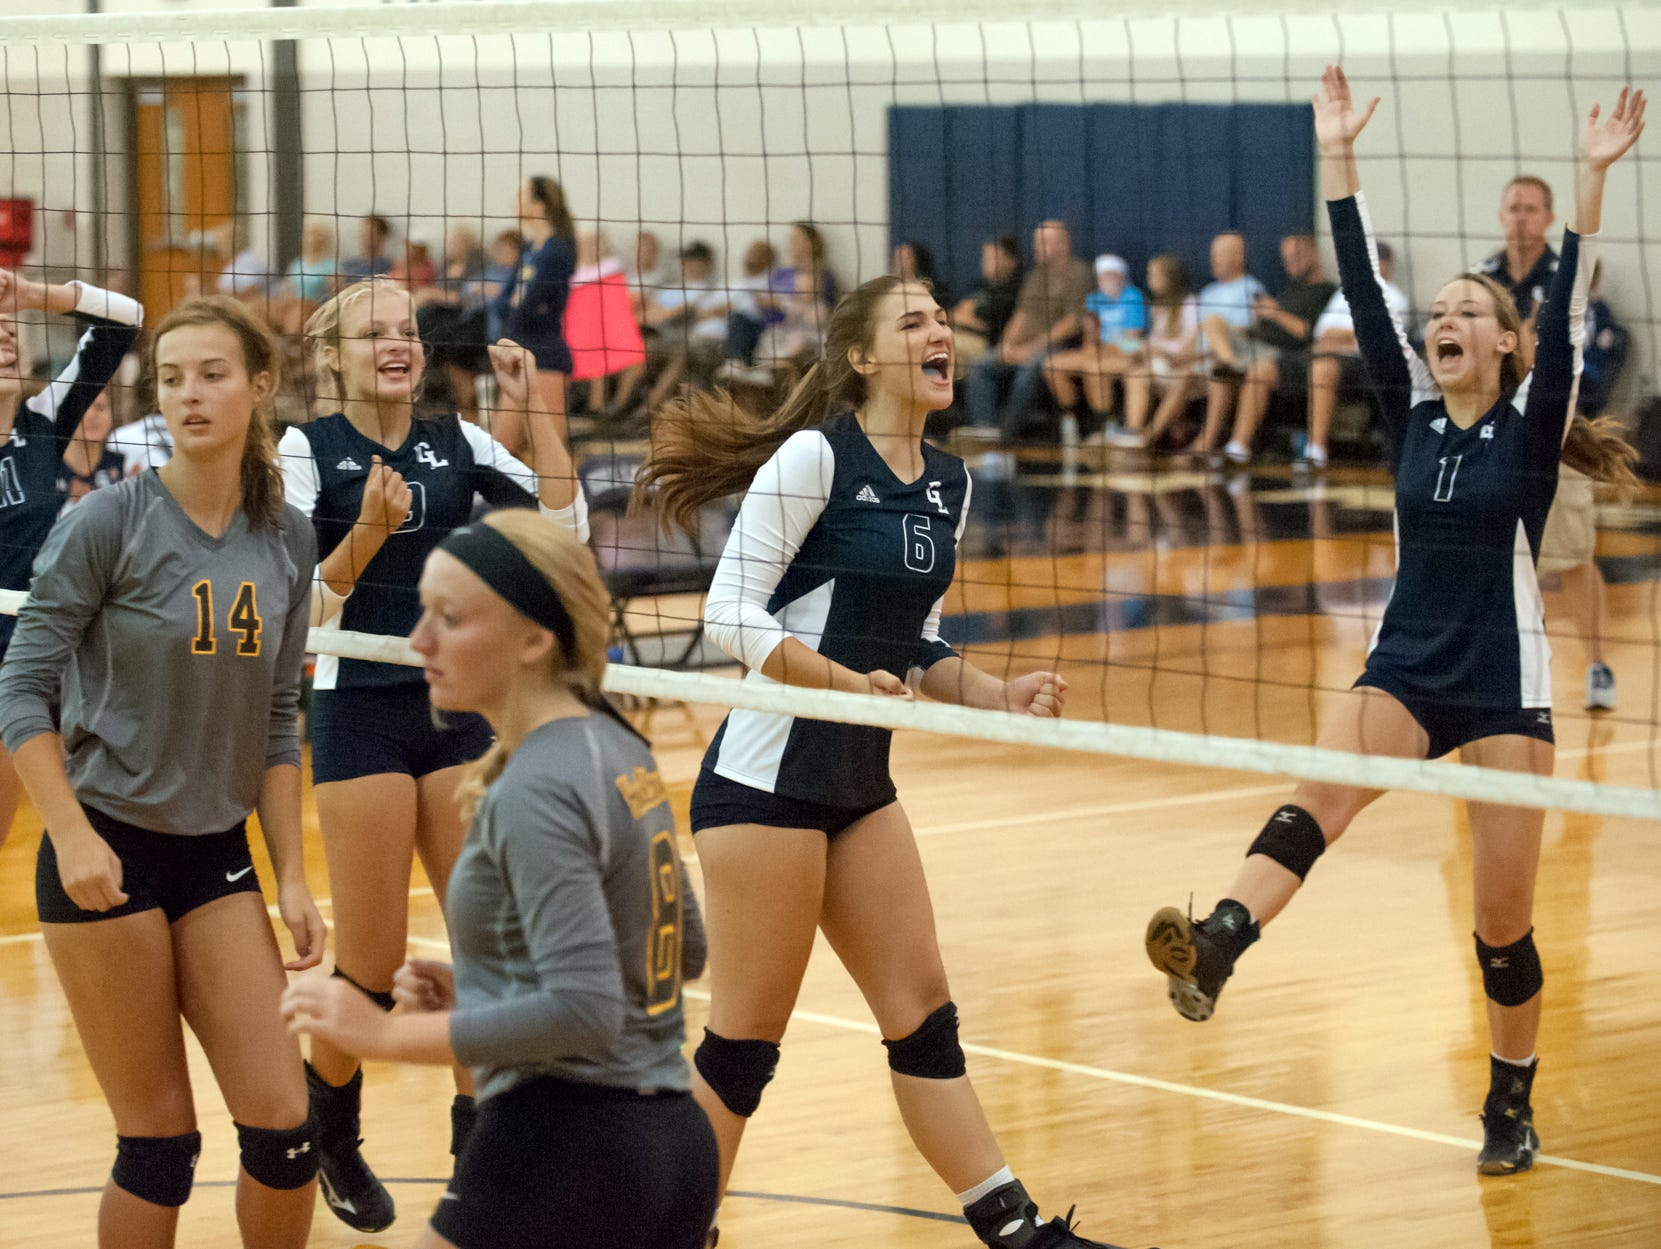 Gull Lake celebrates after a win during the Gull Lake Invitational on Friday.